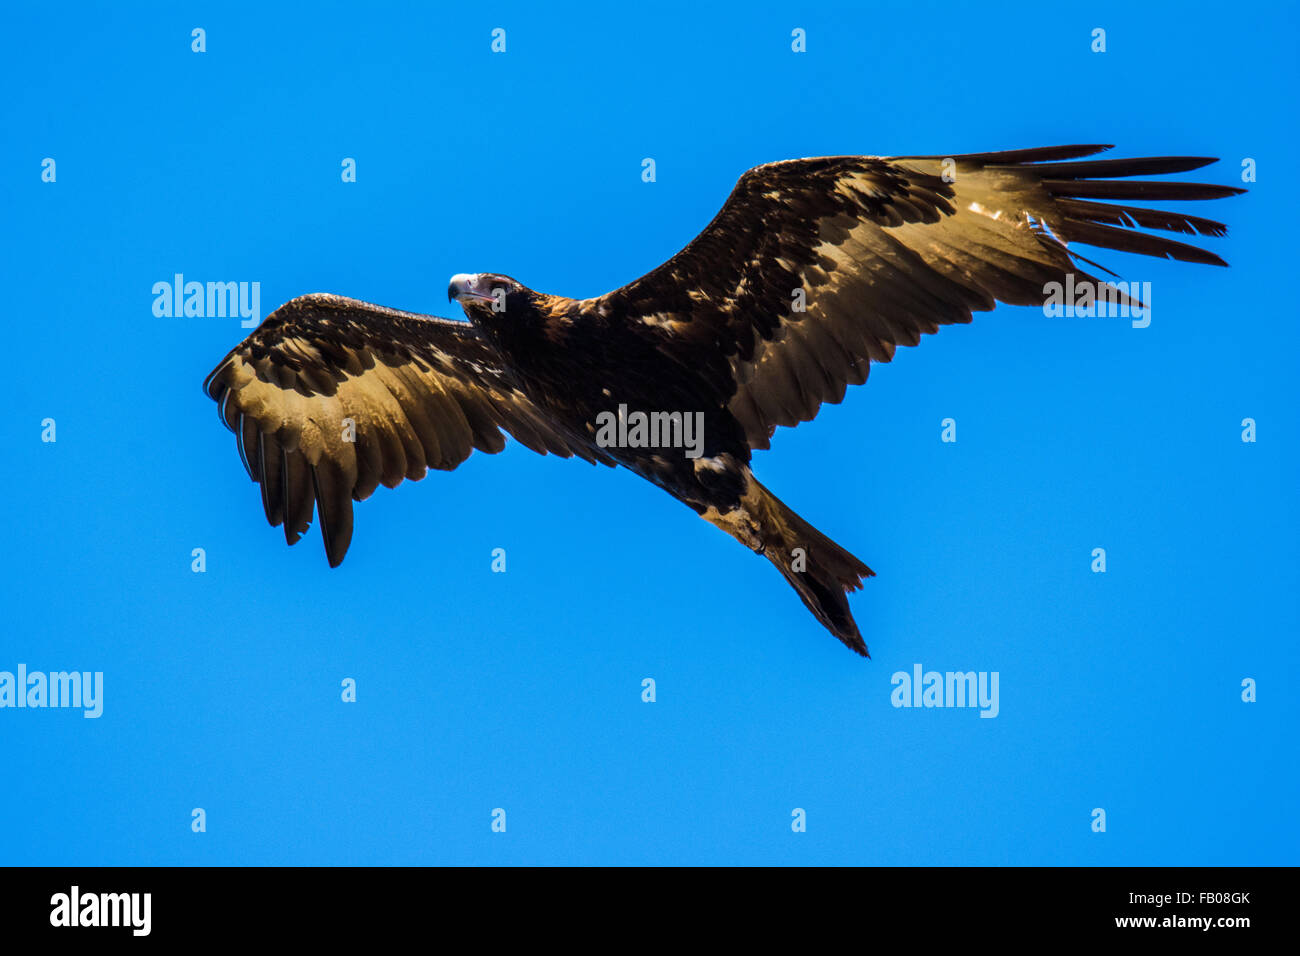 Wedge-tailed Eagle (Aquila audax) in flight. - Stock Image